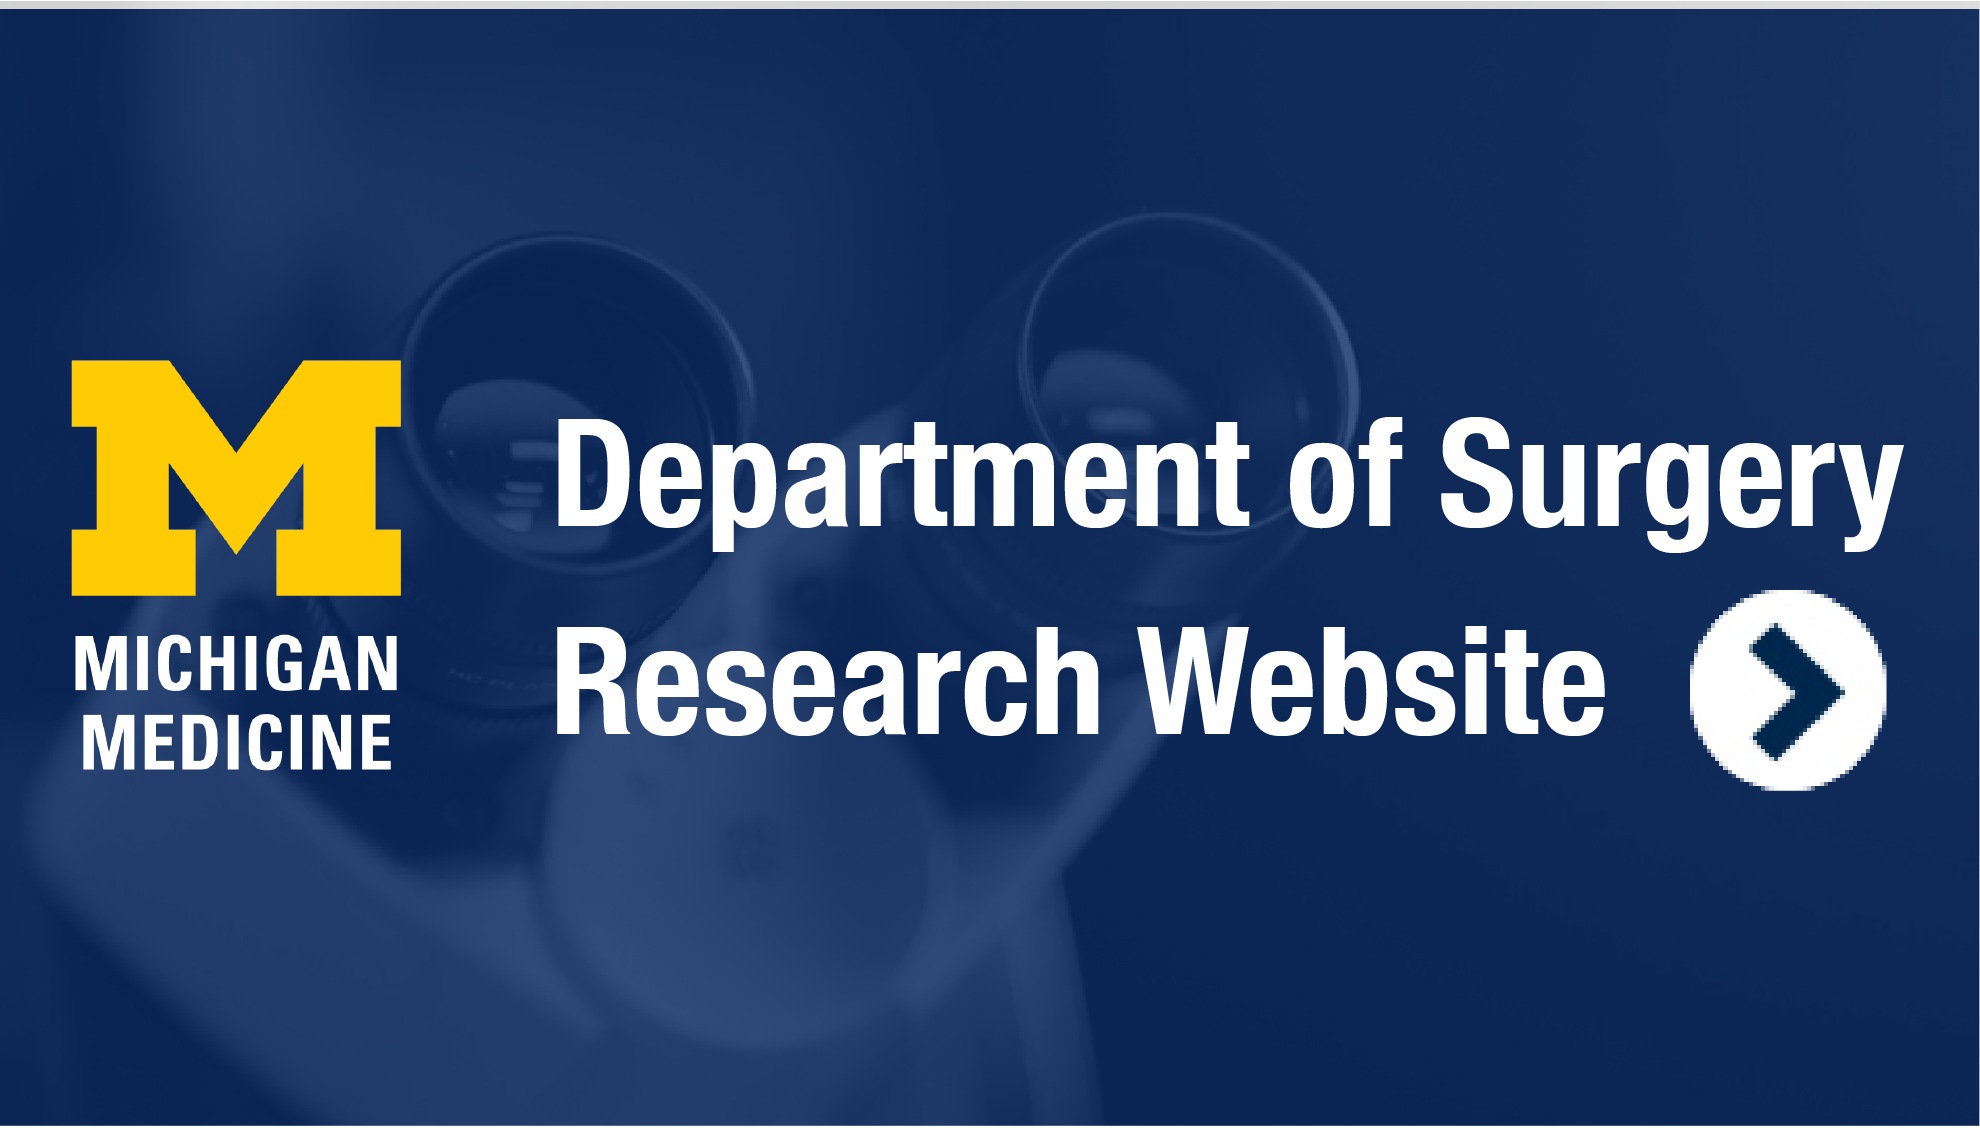 Department of Surgery Research Website